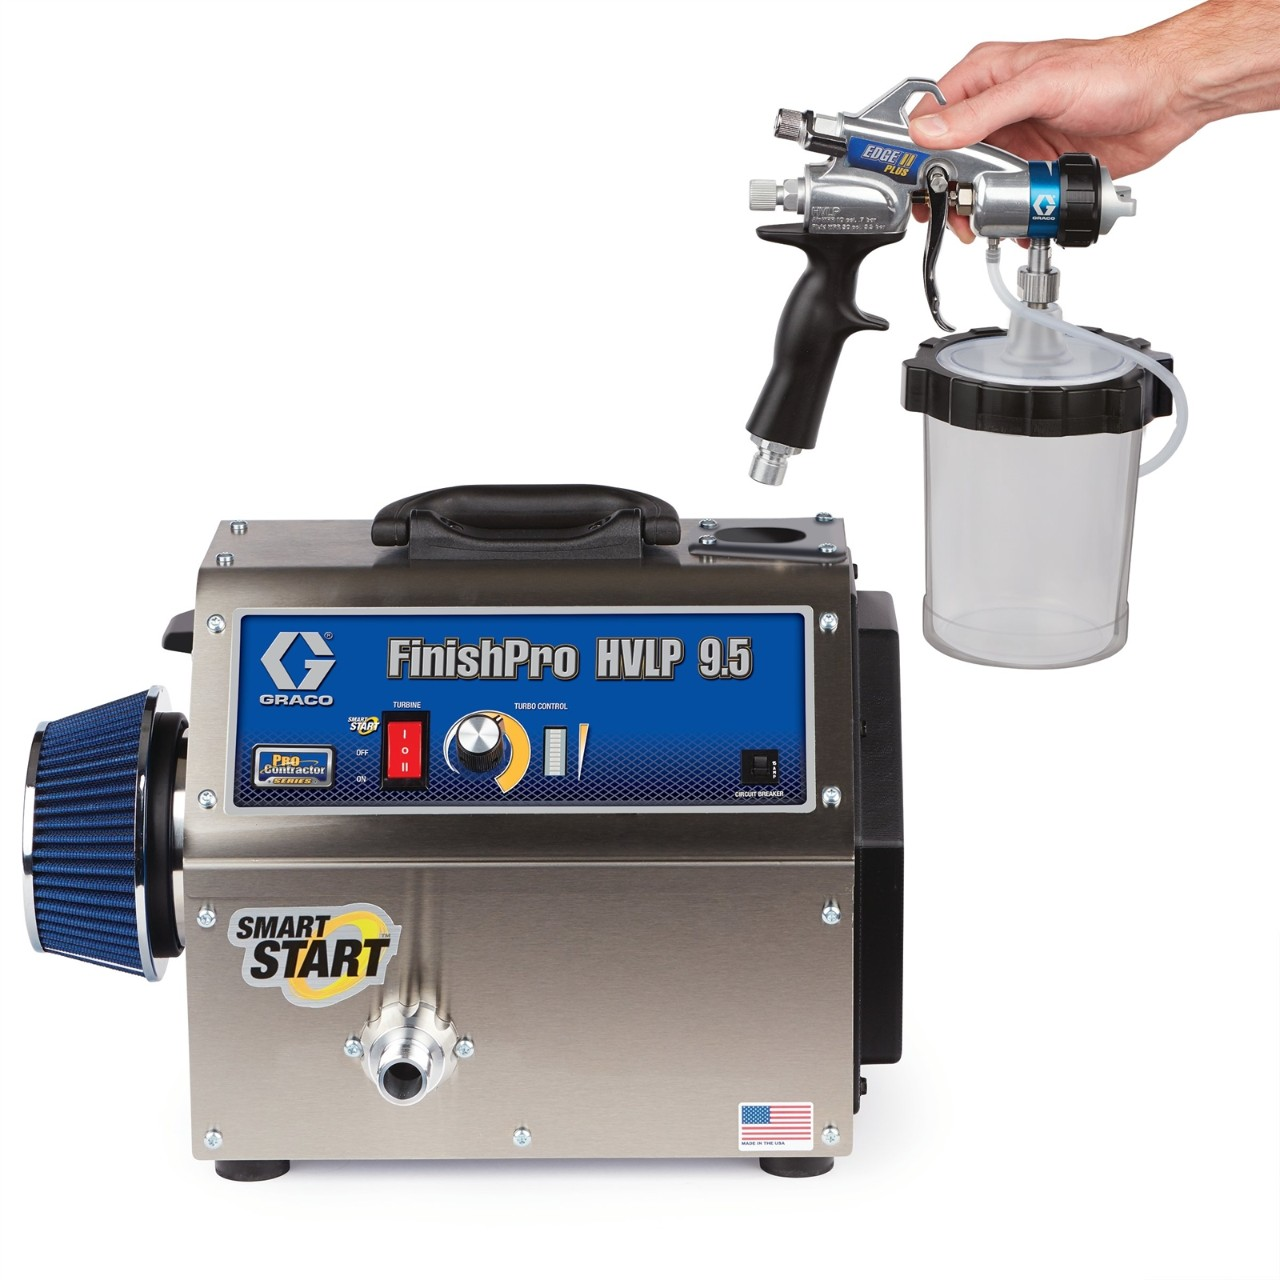 FinishPro HVLP - 9.5 ProContractor Series - Airless Sprayer - ProQuip